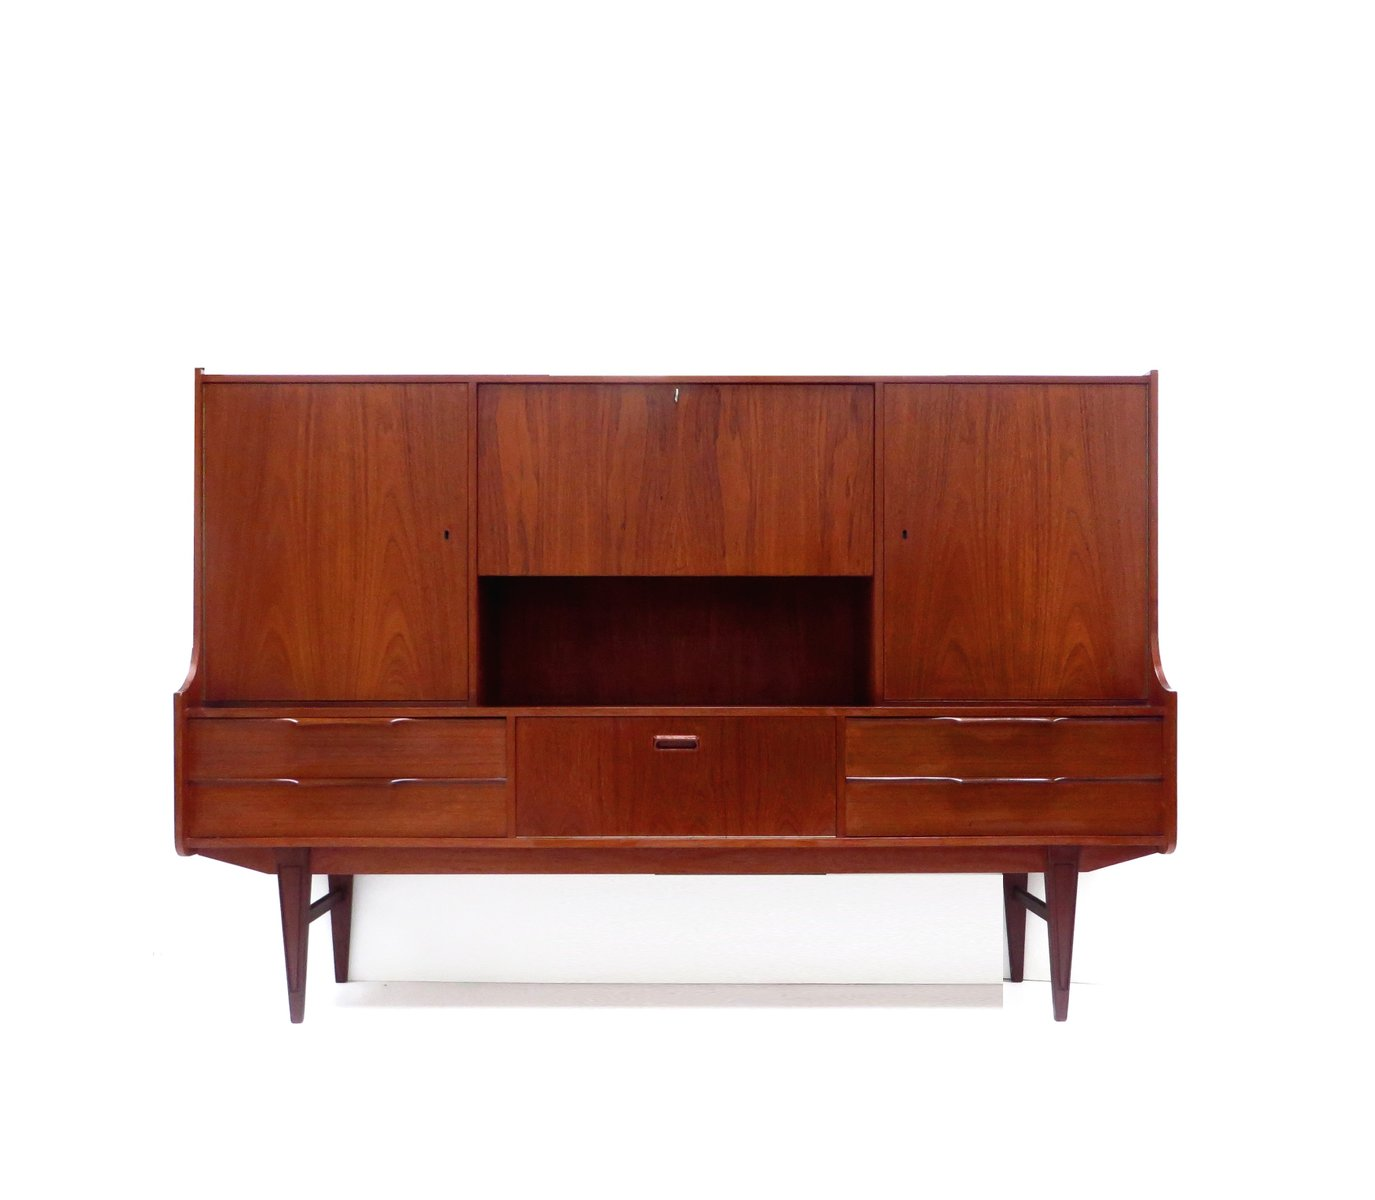 high vintage sideboard in teak for sale at pamono. Black Bedroom Furniture Sets. Home Design Ideas